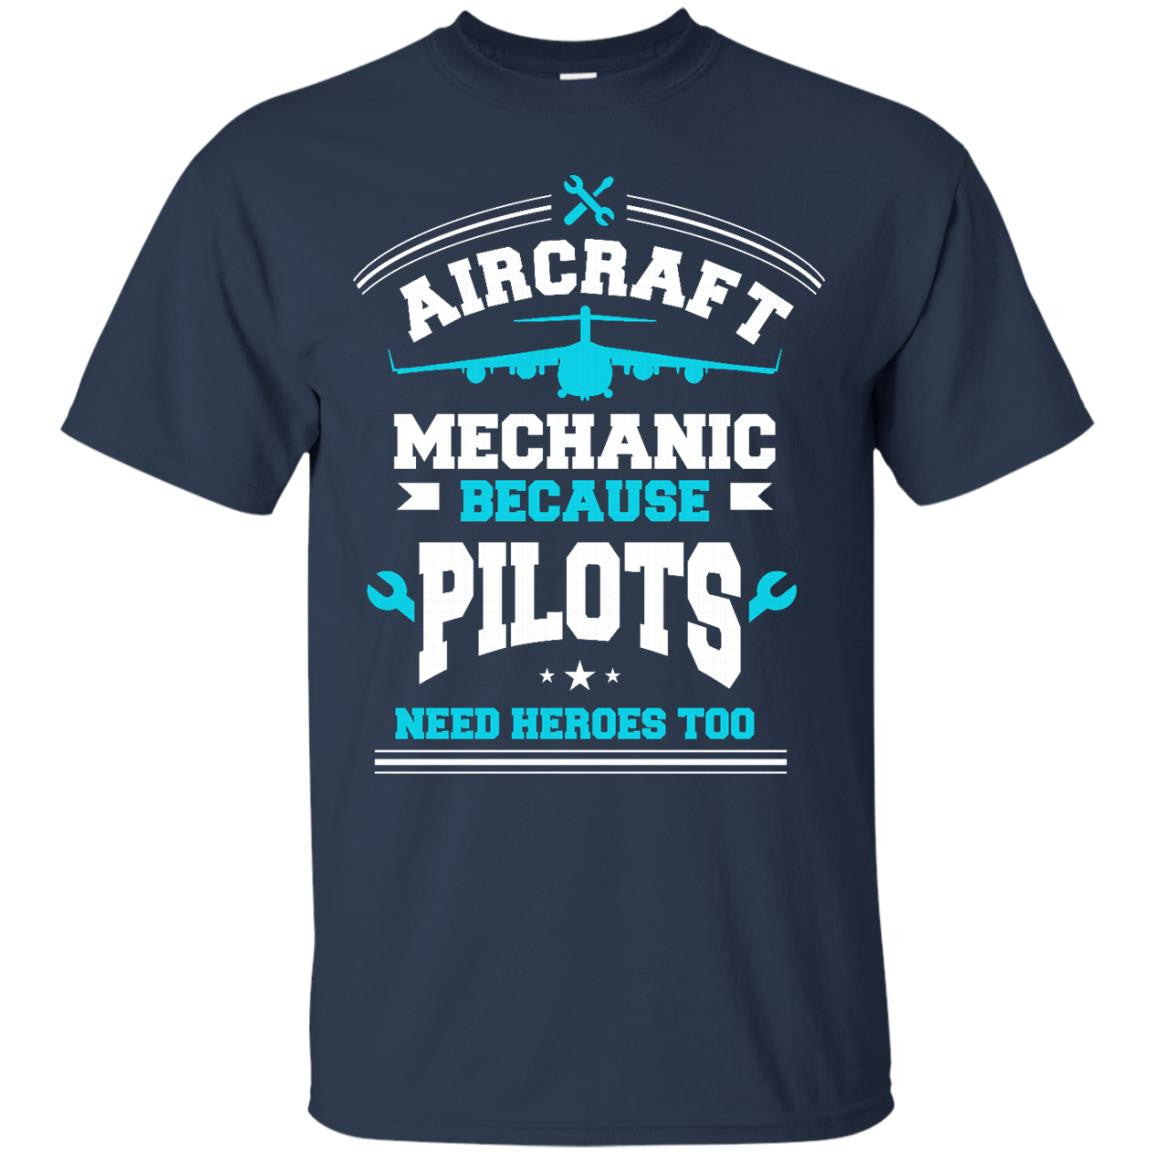 Aircraft Mechanic Shirts Because Pilots Need Heroes Hoodies Sweatshirts